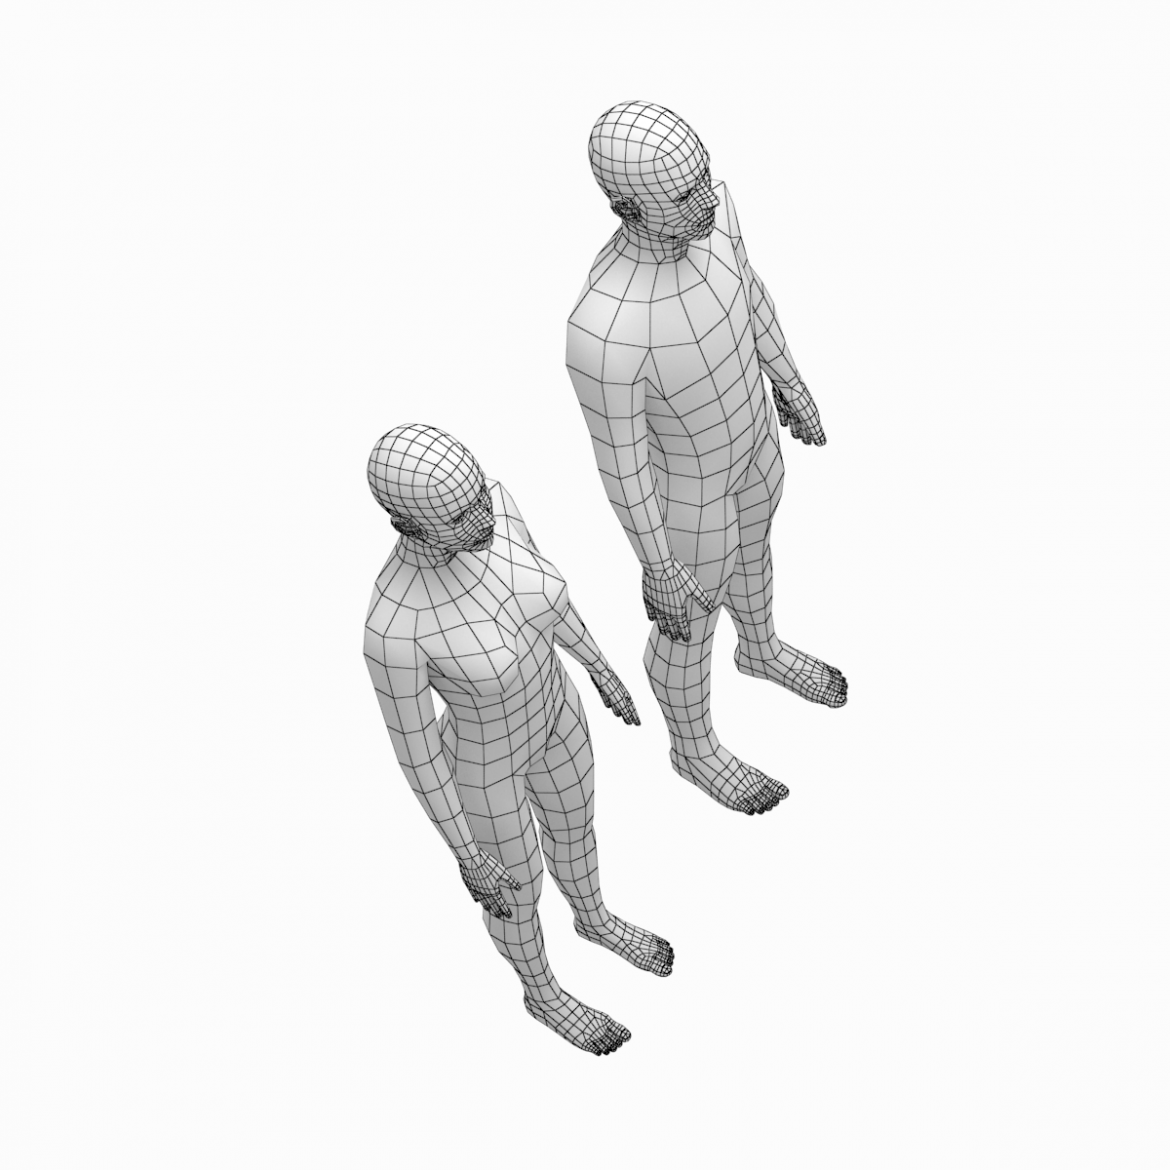 female and male deailed base mesh in rest pose 3d model 3ds max dxf dwg fbx c4d dae ma mb  obj 301297